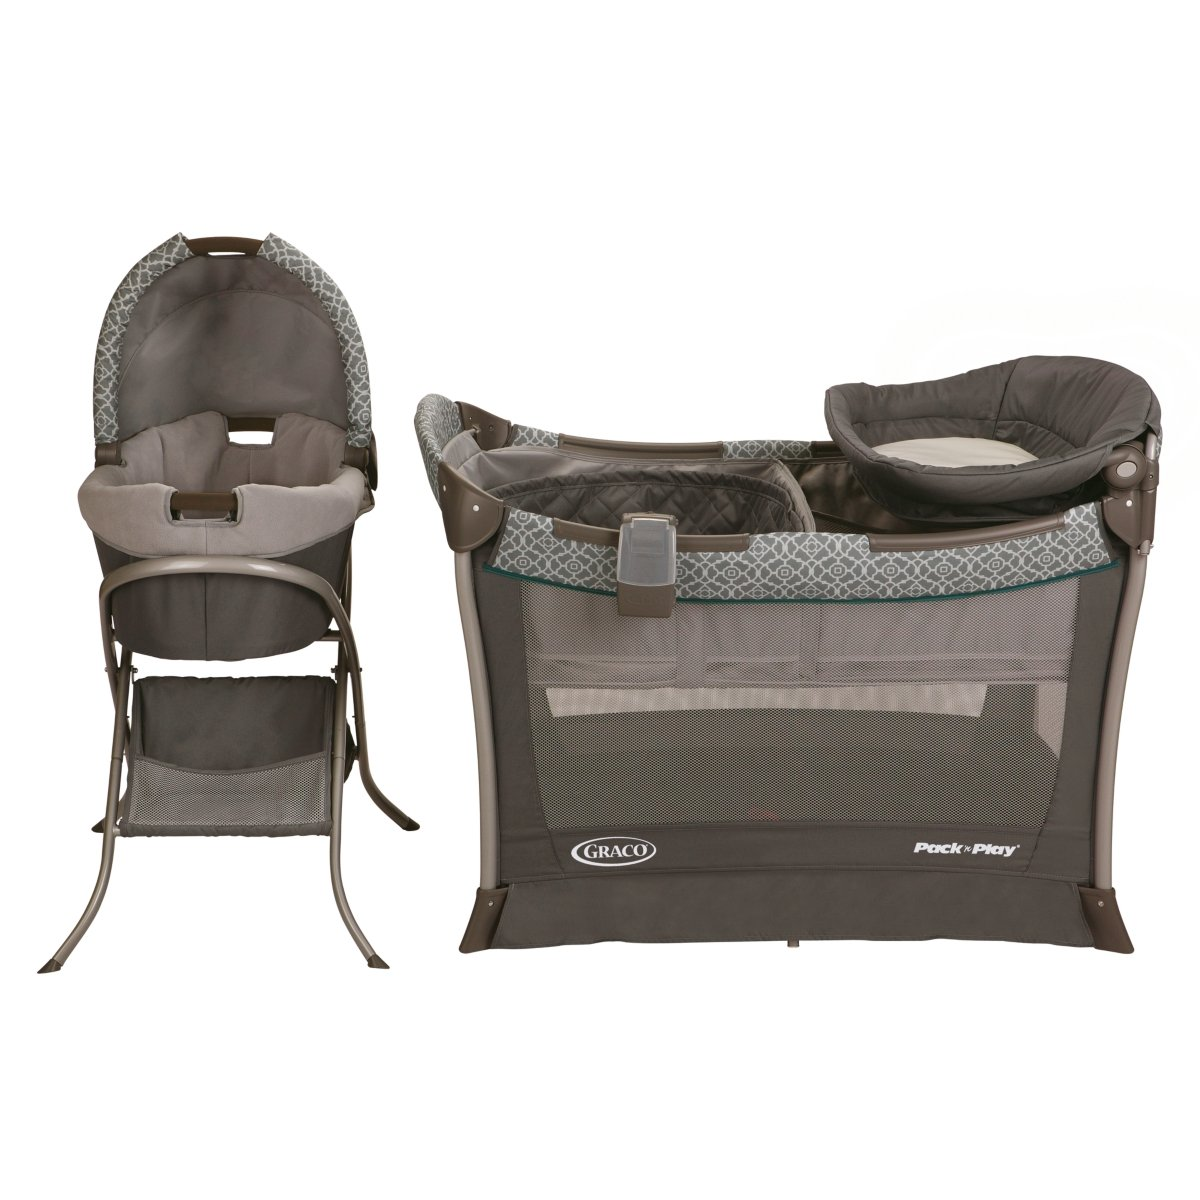 Graco Day 2 Night Sleep System